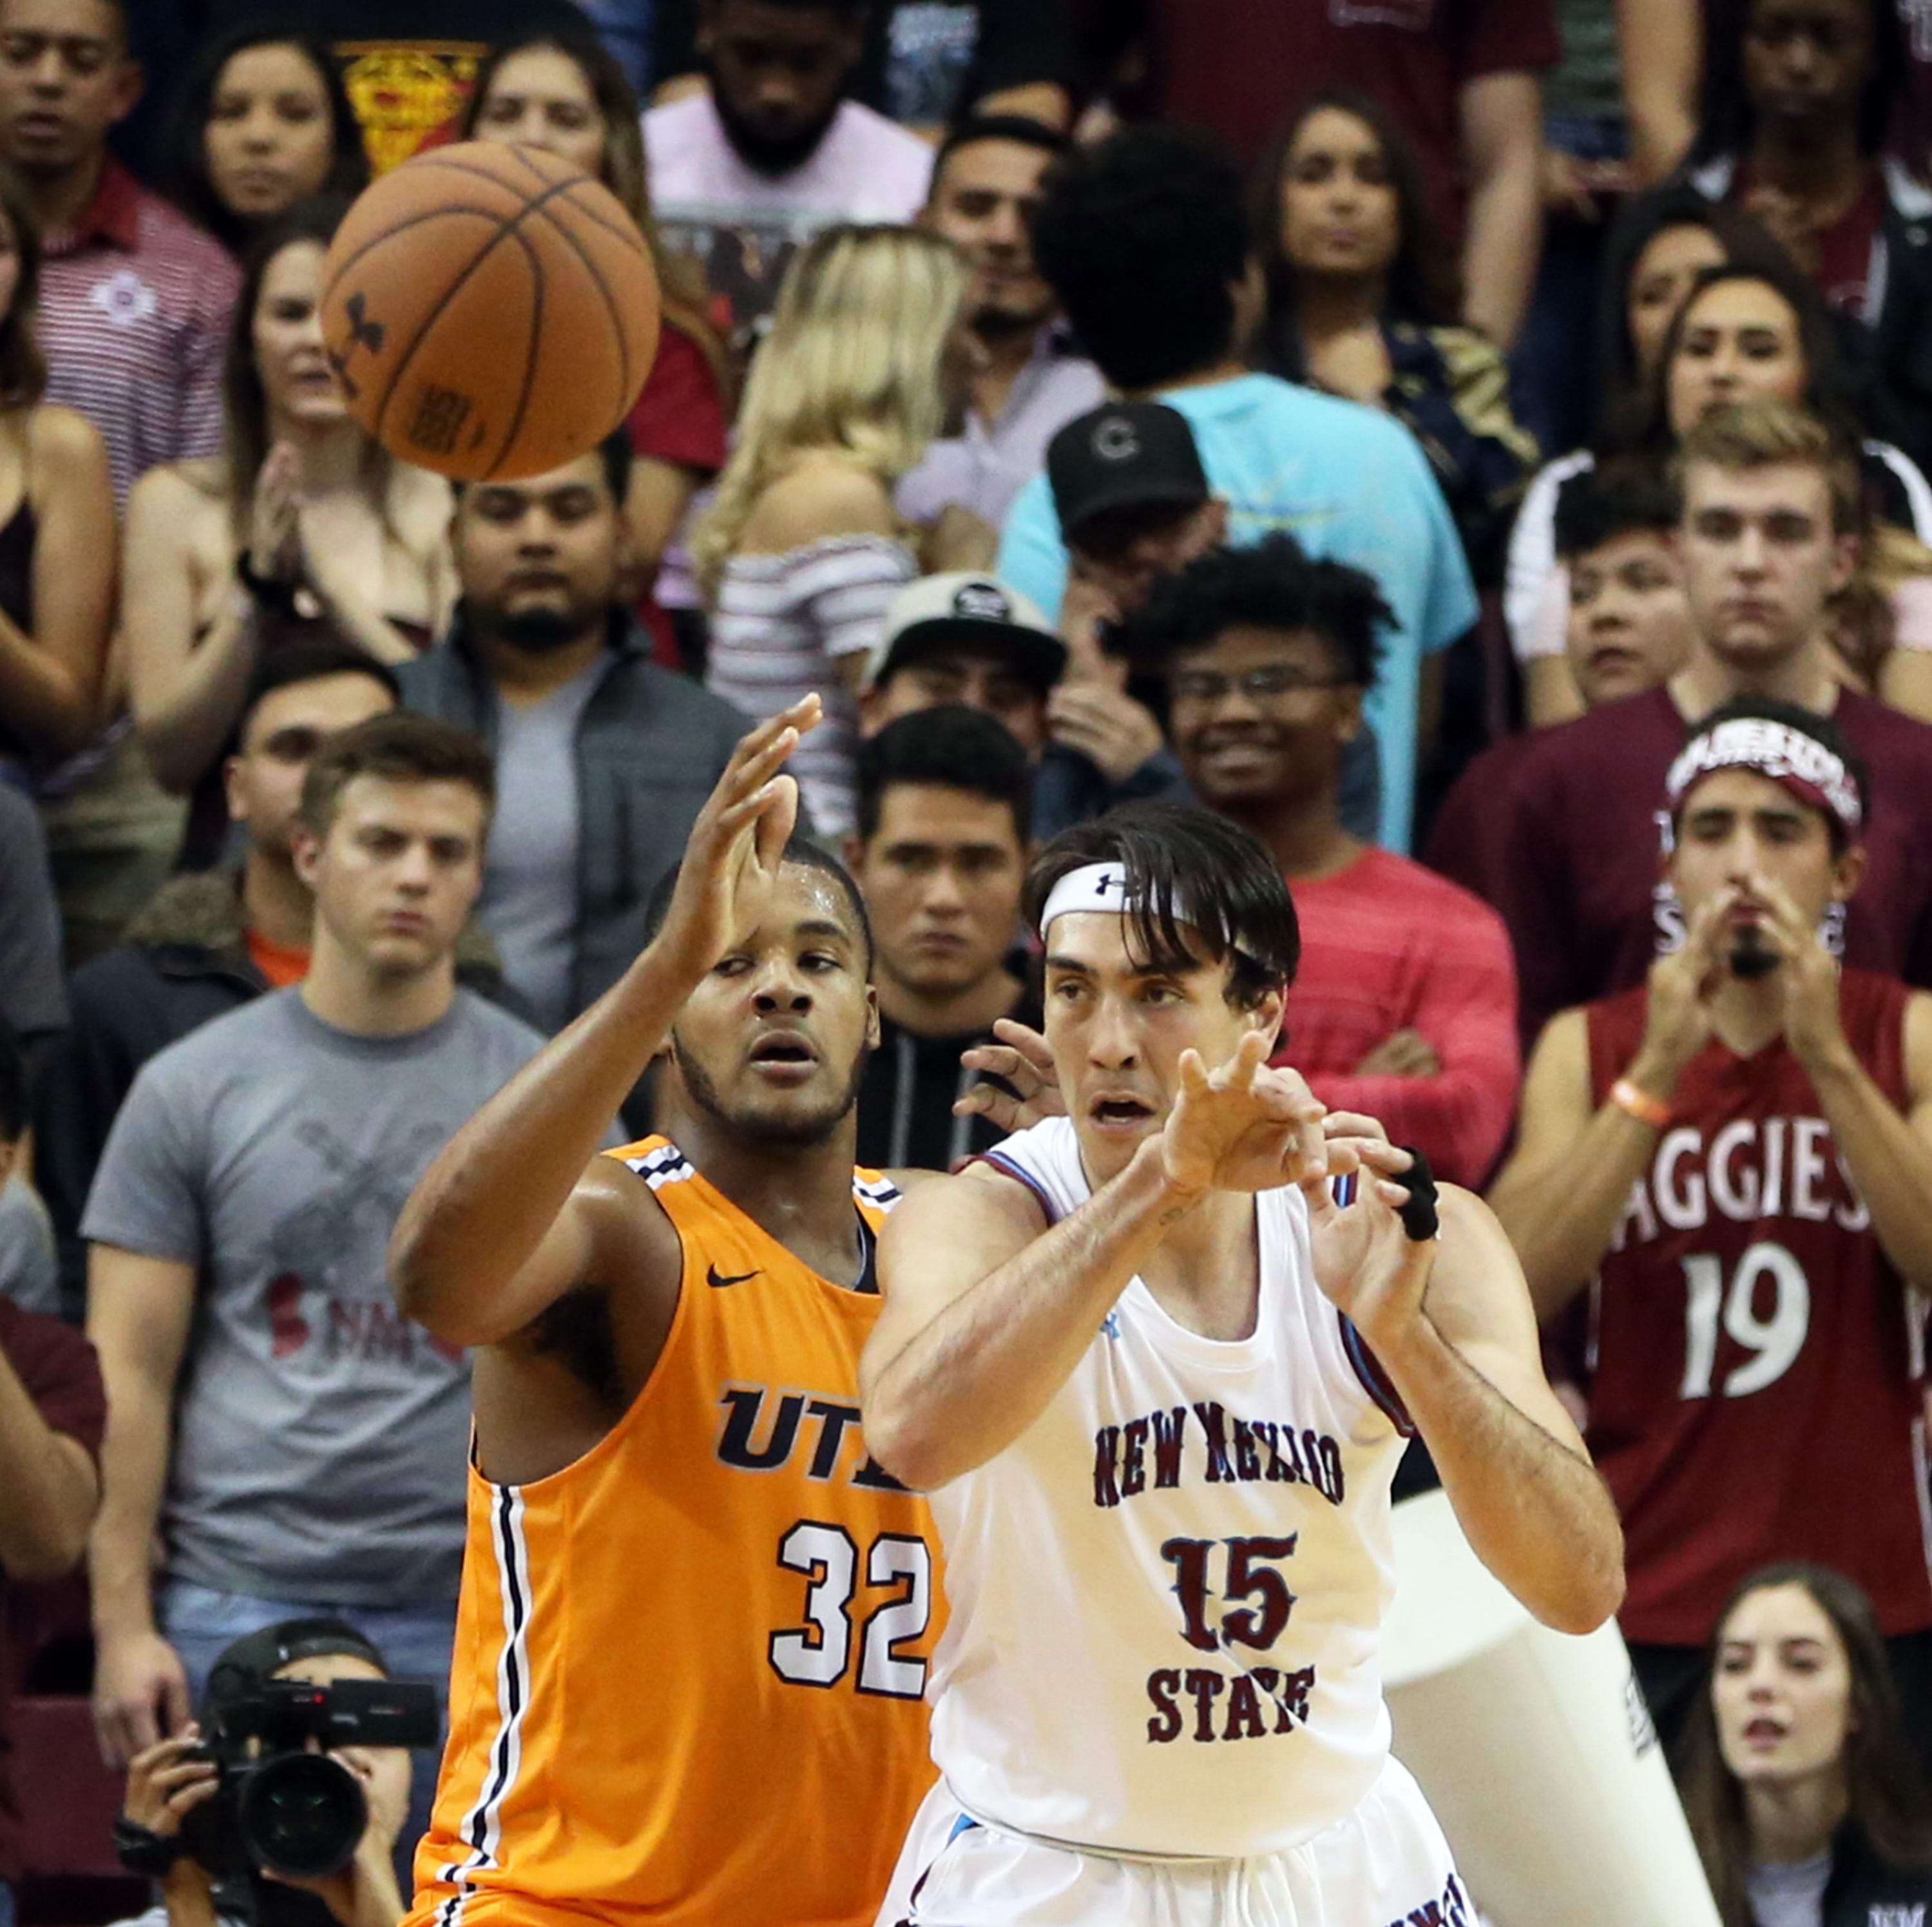 This week will be a good barometer of where New Mexico State basketball is at